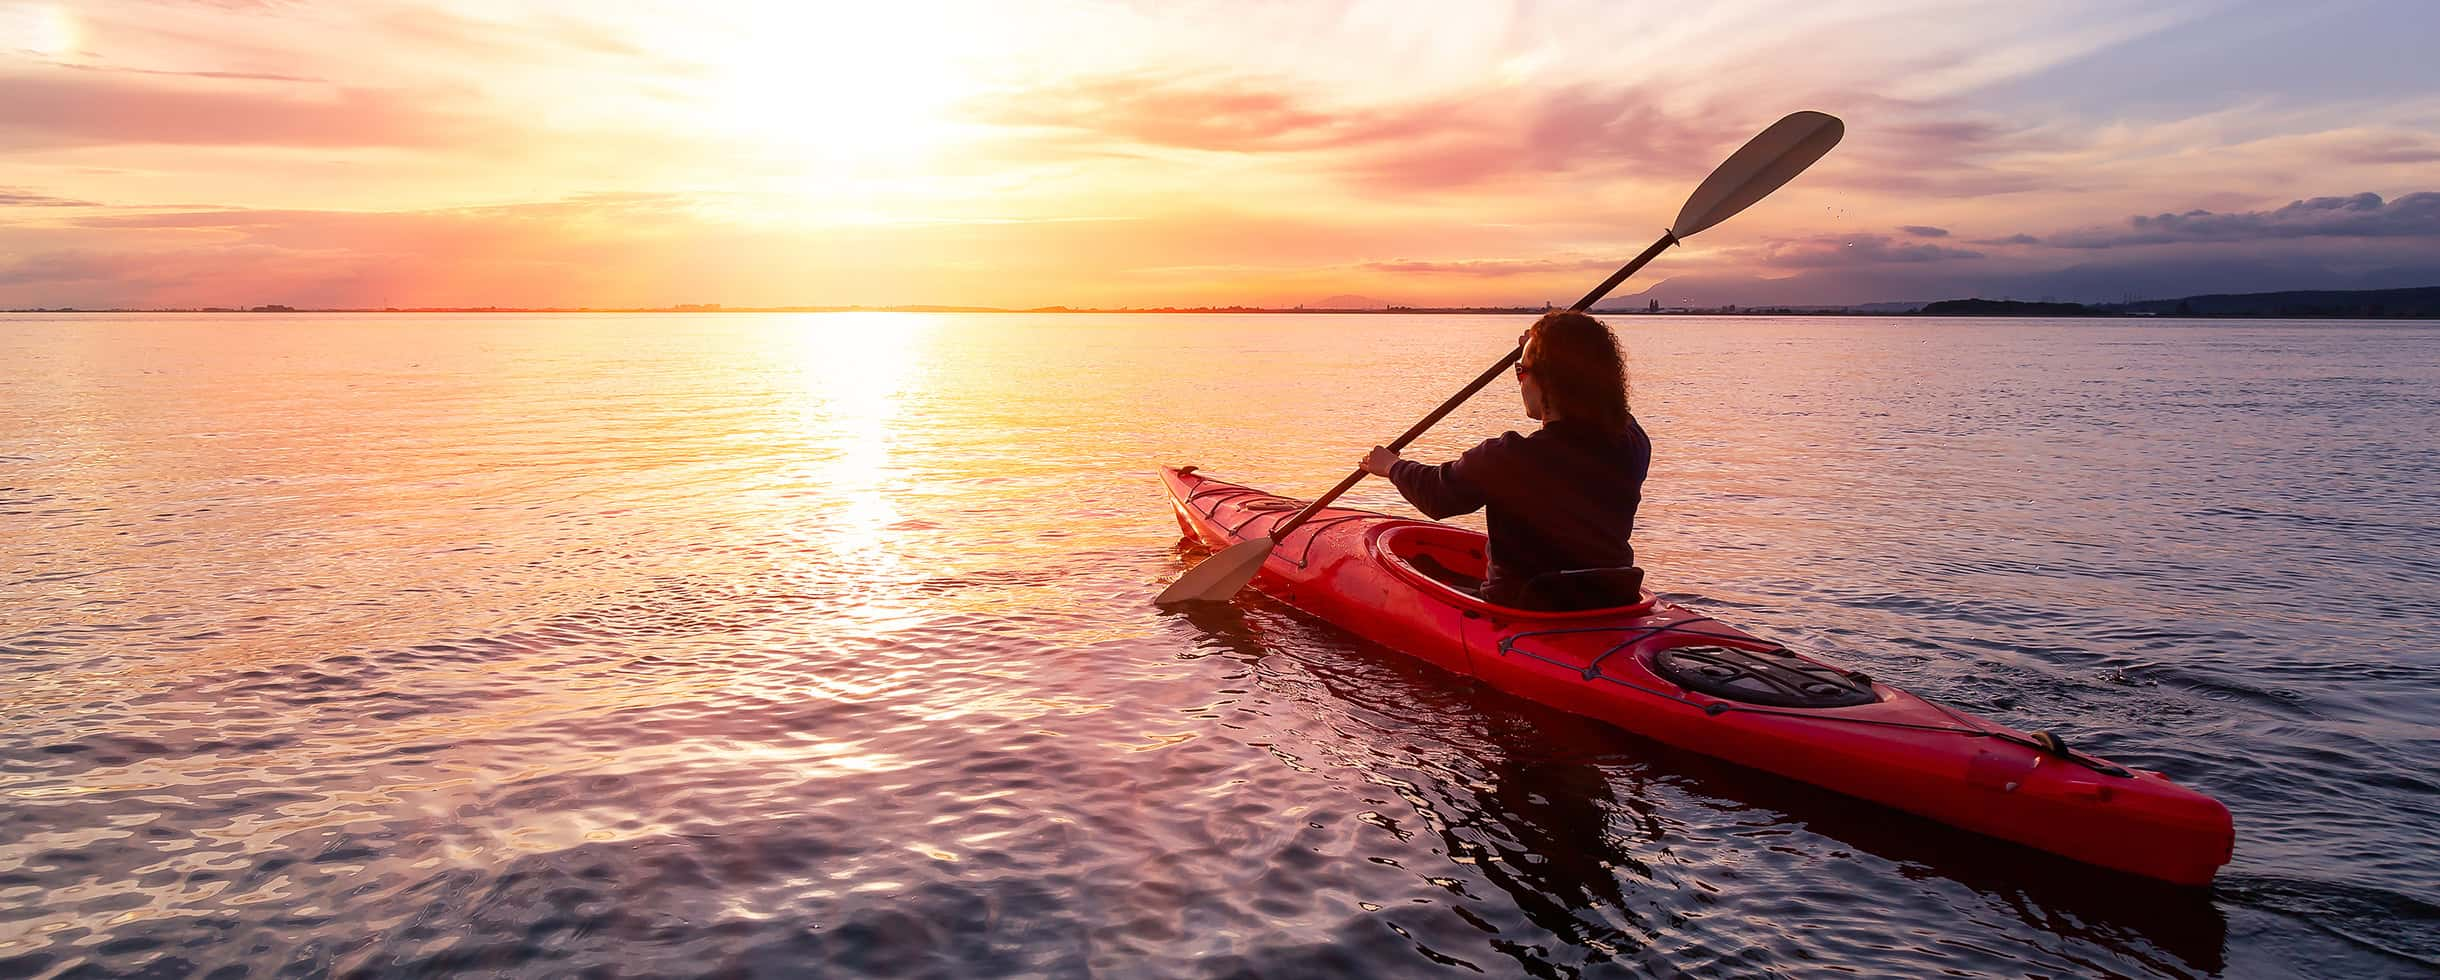 kayaking - one of the top things to do in Portland, Maine